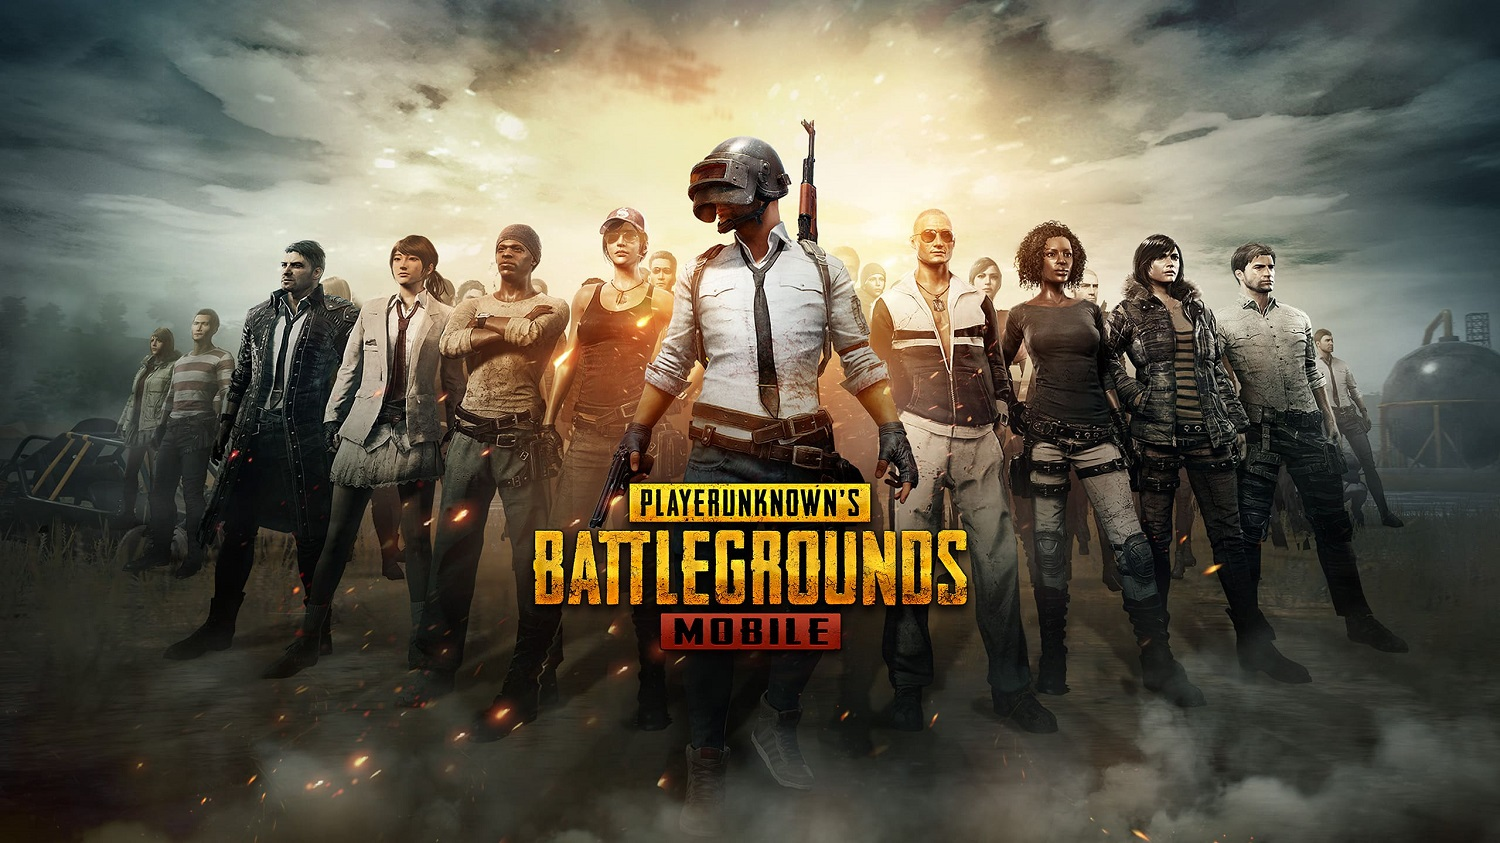 https://i2.wp.com/itc.ua/wp-content/uploads/2020/01/pubg-mobile.jpg?quality=100&strip=all&ssl=1